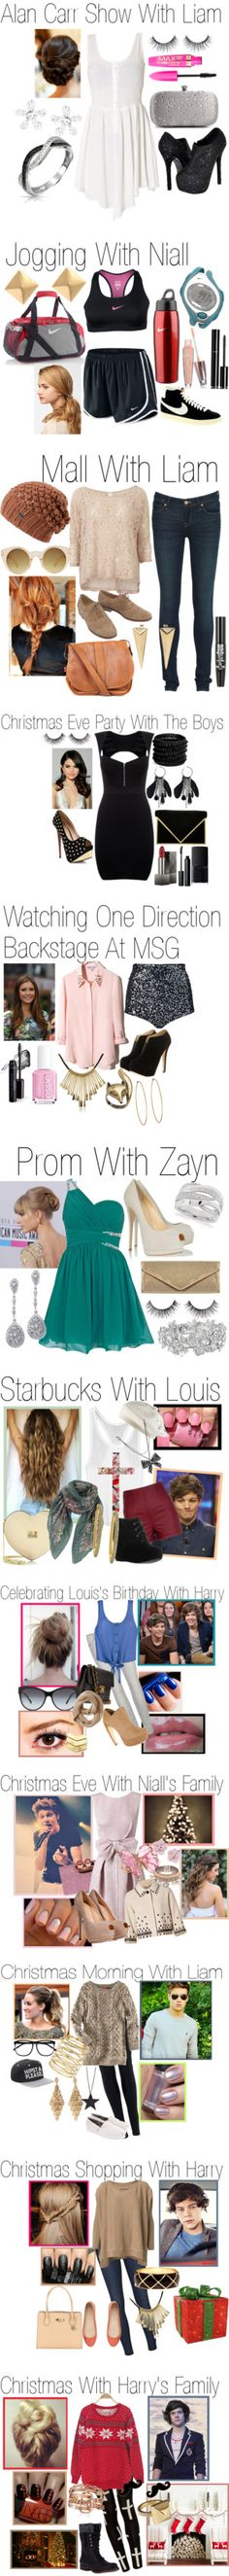 """""""One Direction Outfits"""" by harrystyles2213 ❤ liked on Polyvore"""